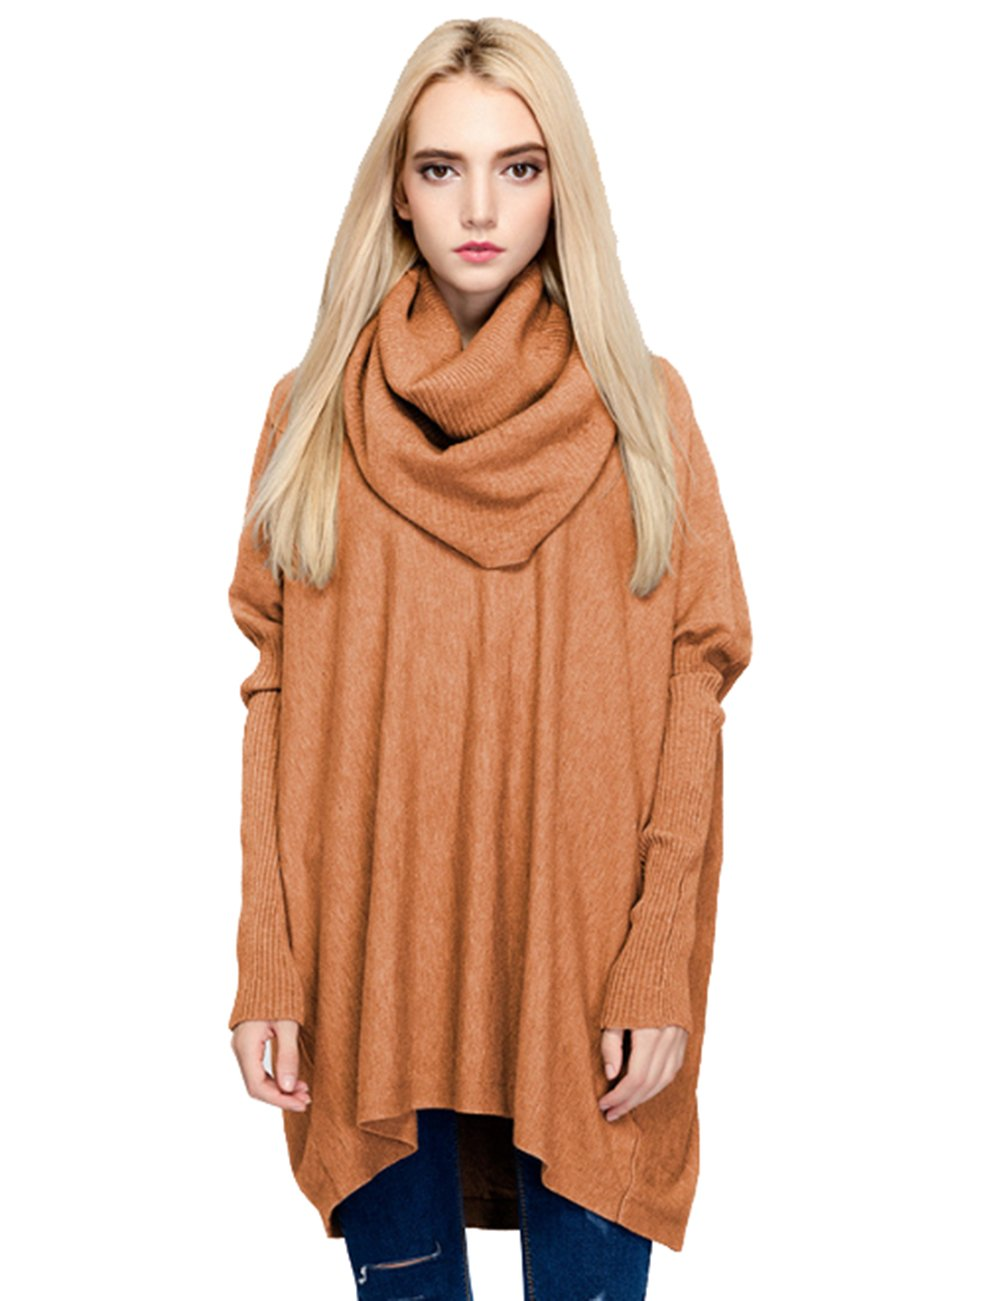 SalenT Womens Turtleneck Oversized Pullover Sweaters Loose Fit Knit Sweater Tunic Top (Coffee)